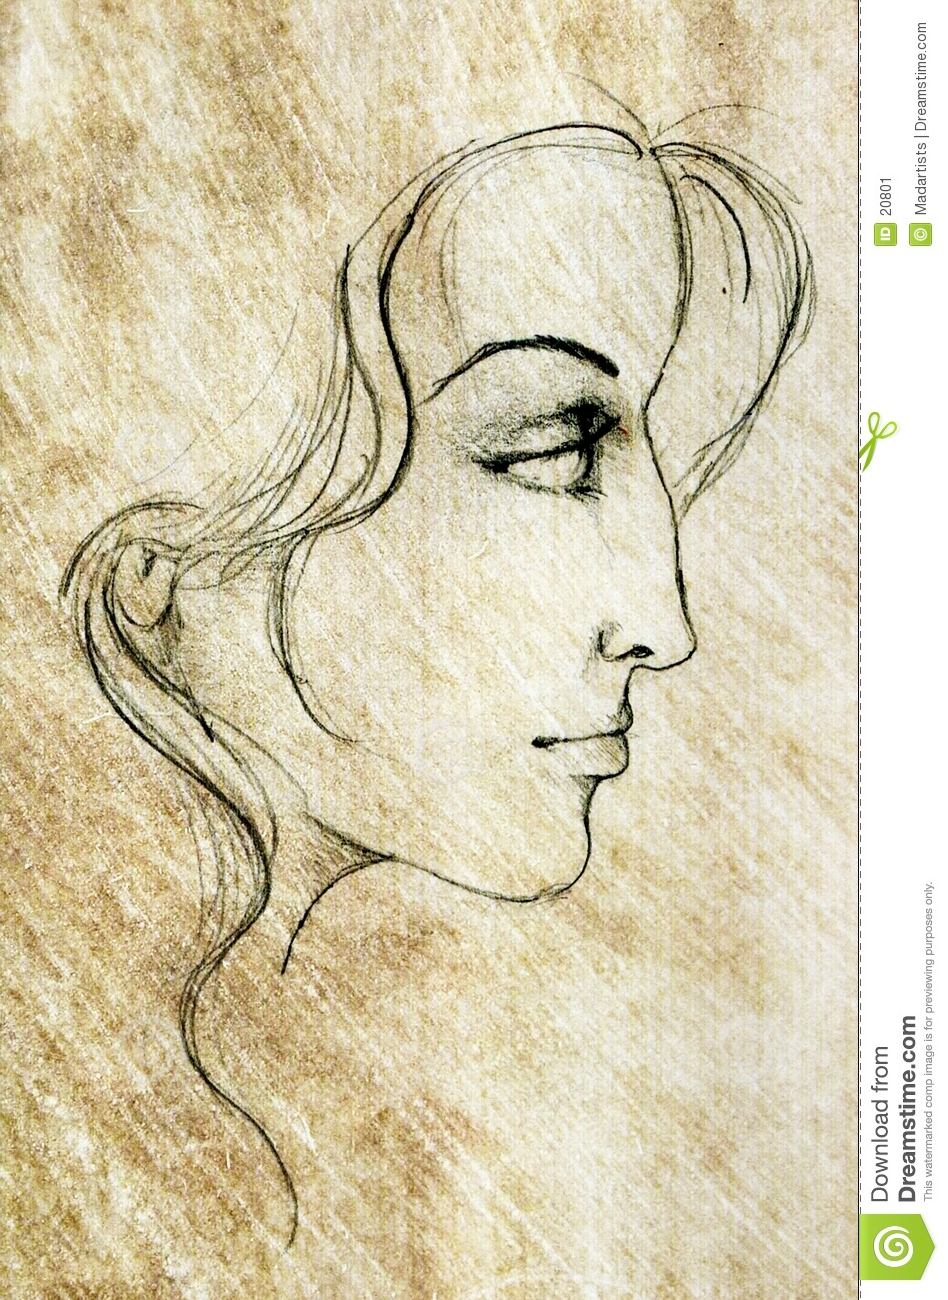 A pencil sketch of a female face digitally recreated for aged effect